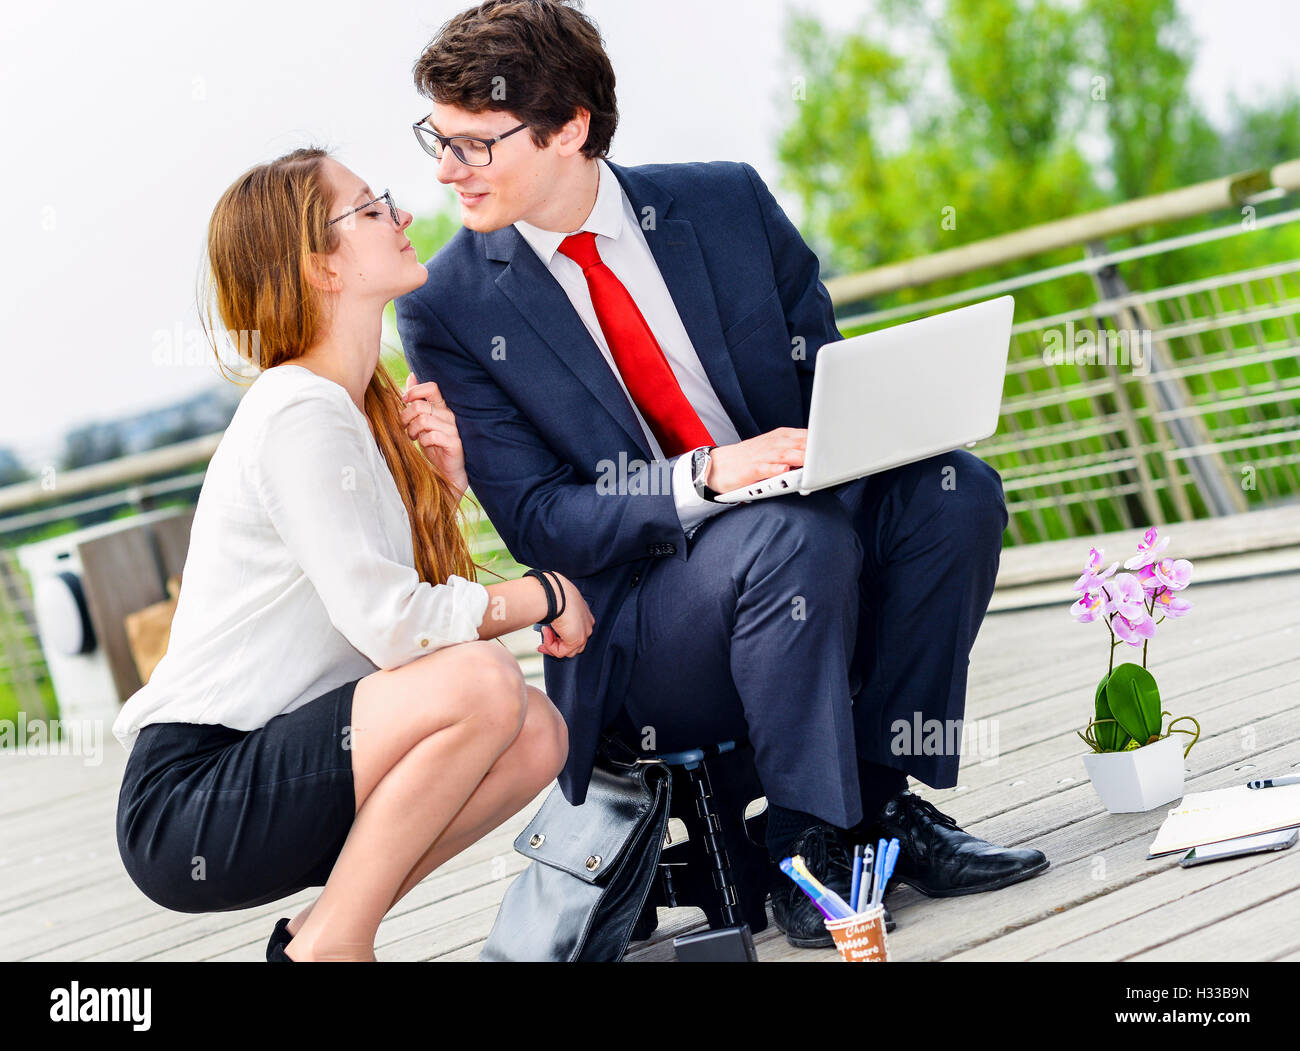 seduction on the workplace - Stock Image